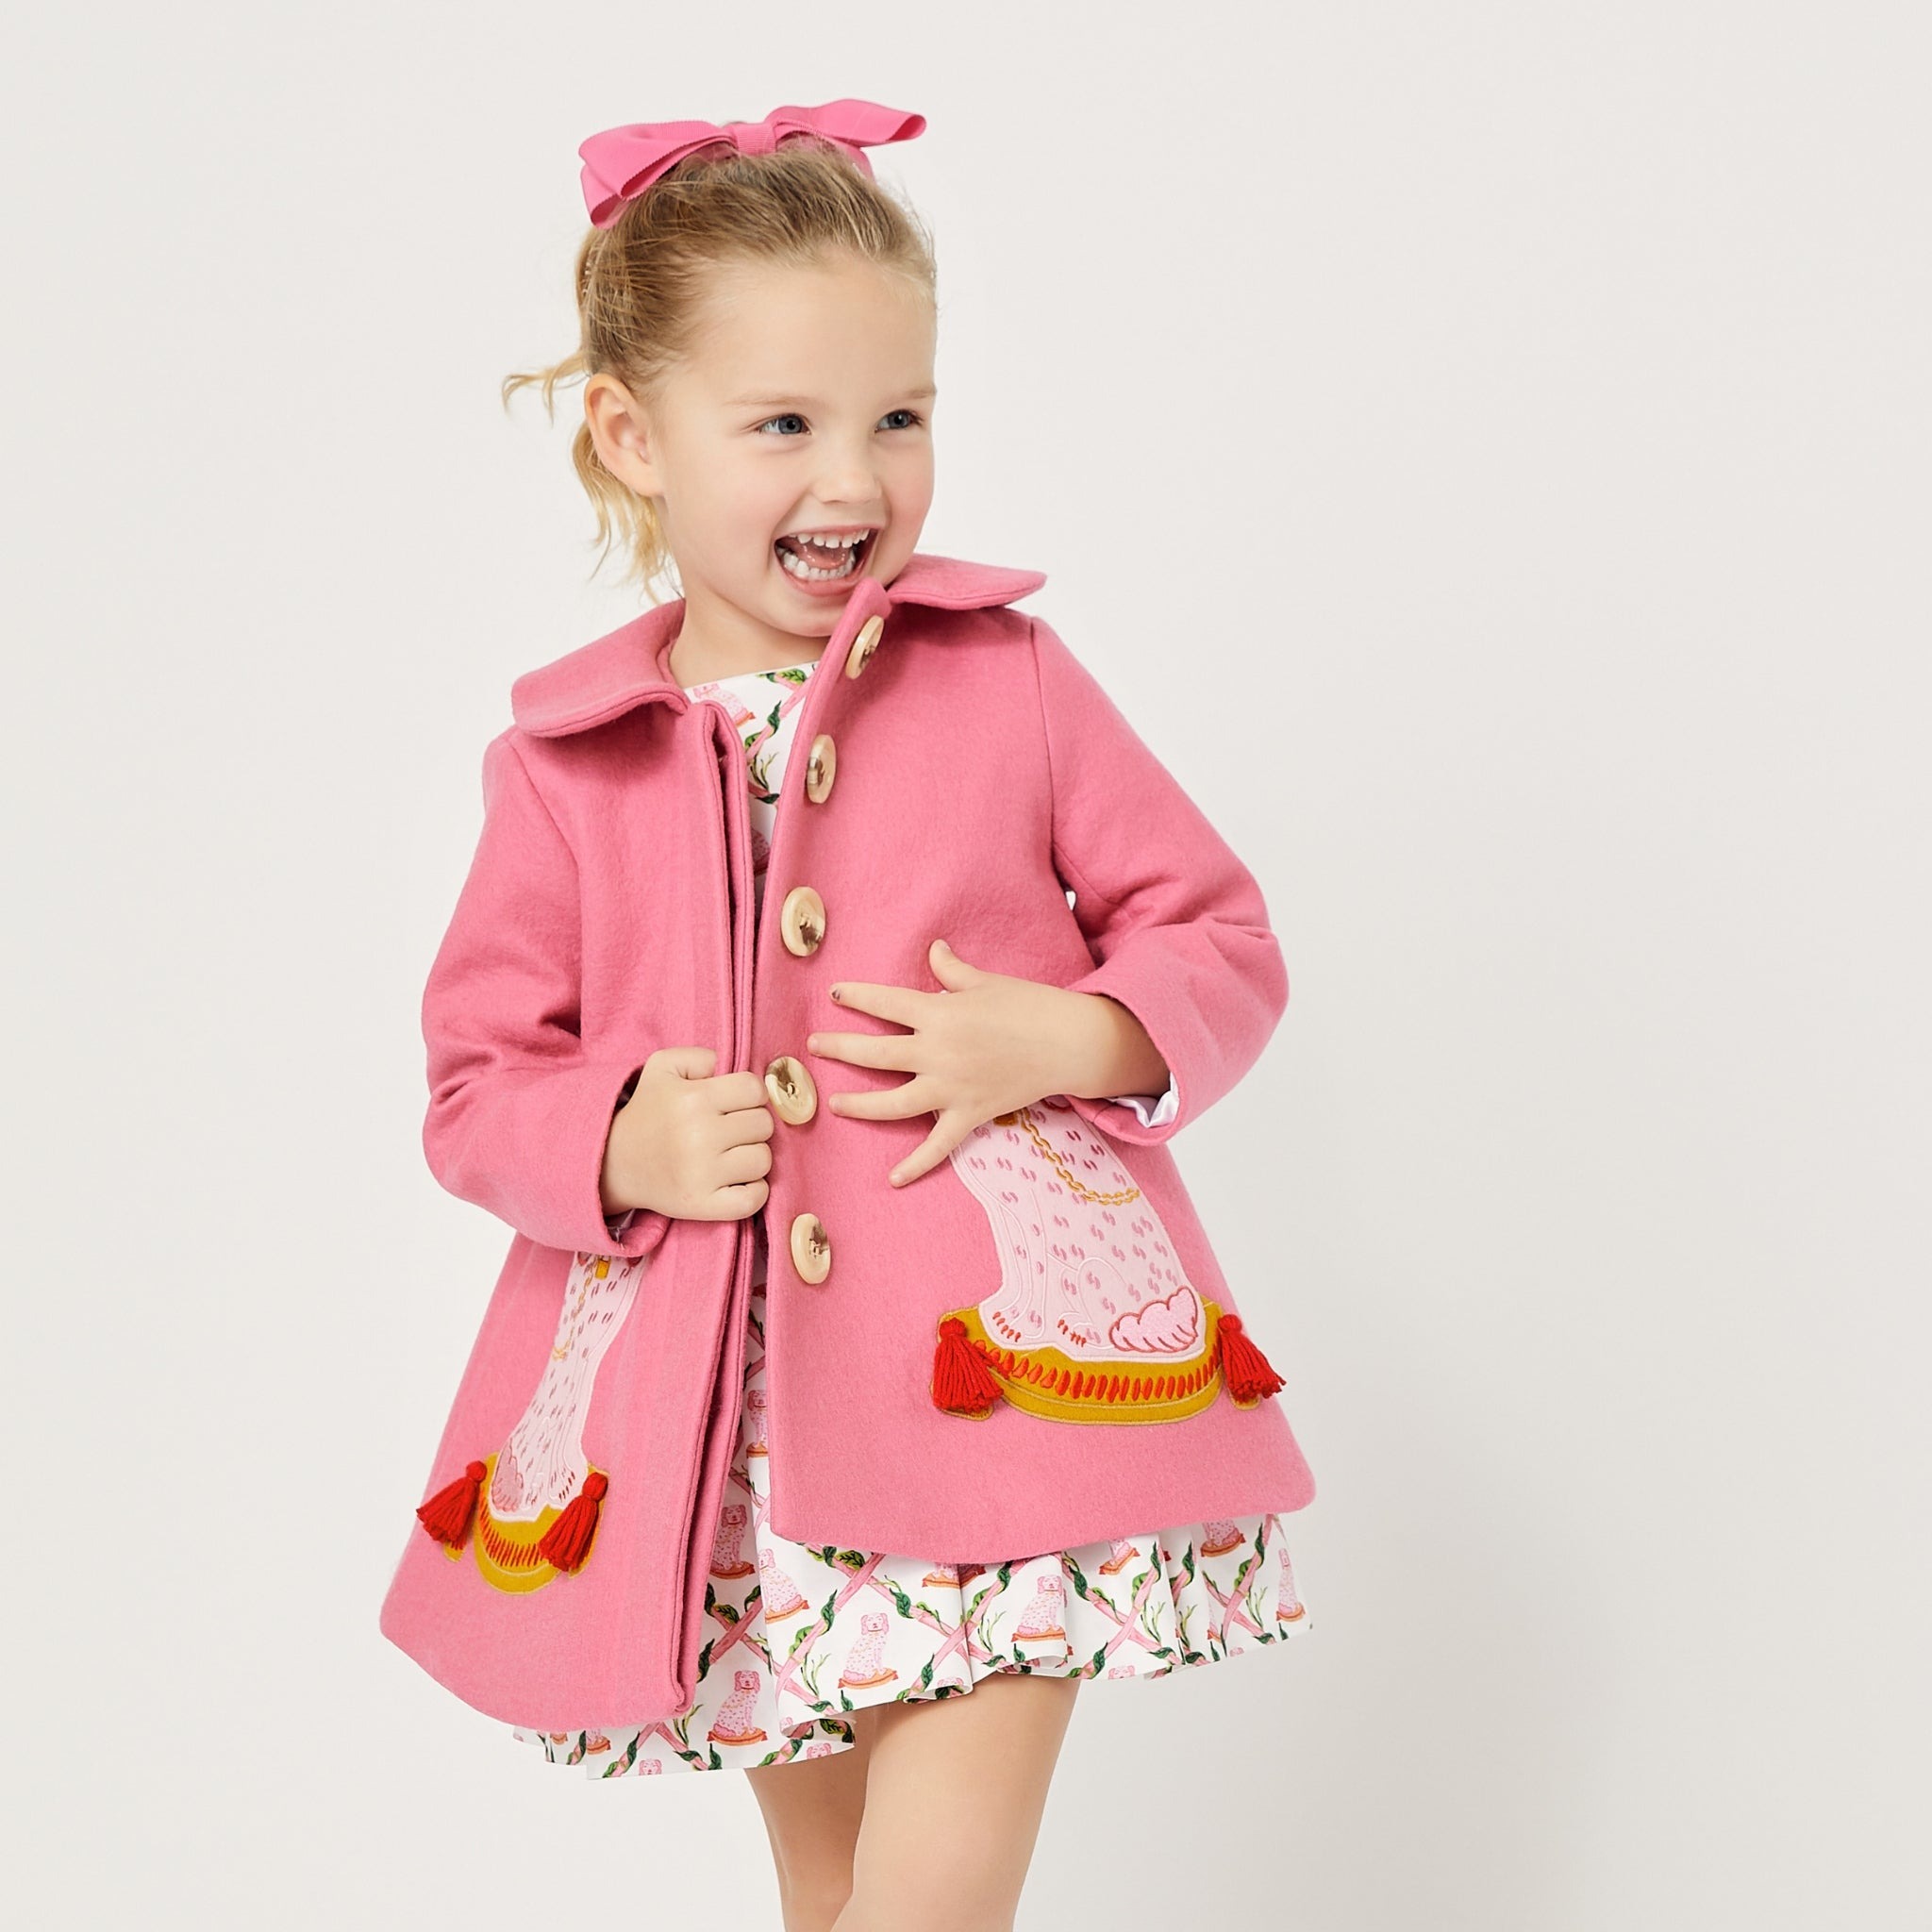 Model wearing pink dog coat, exposing four buttons down the front.